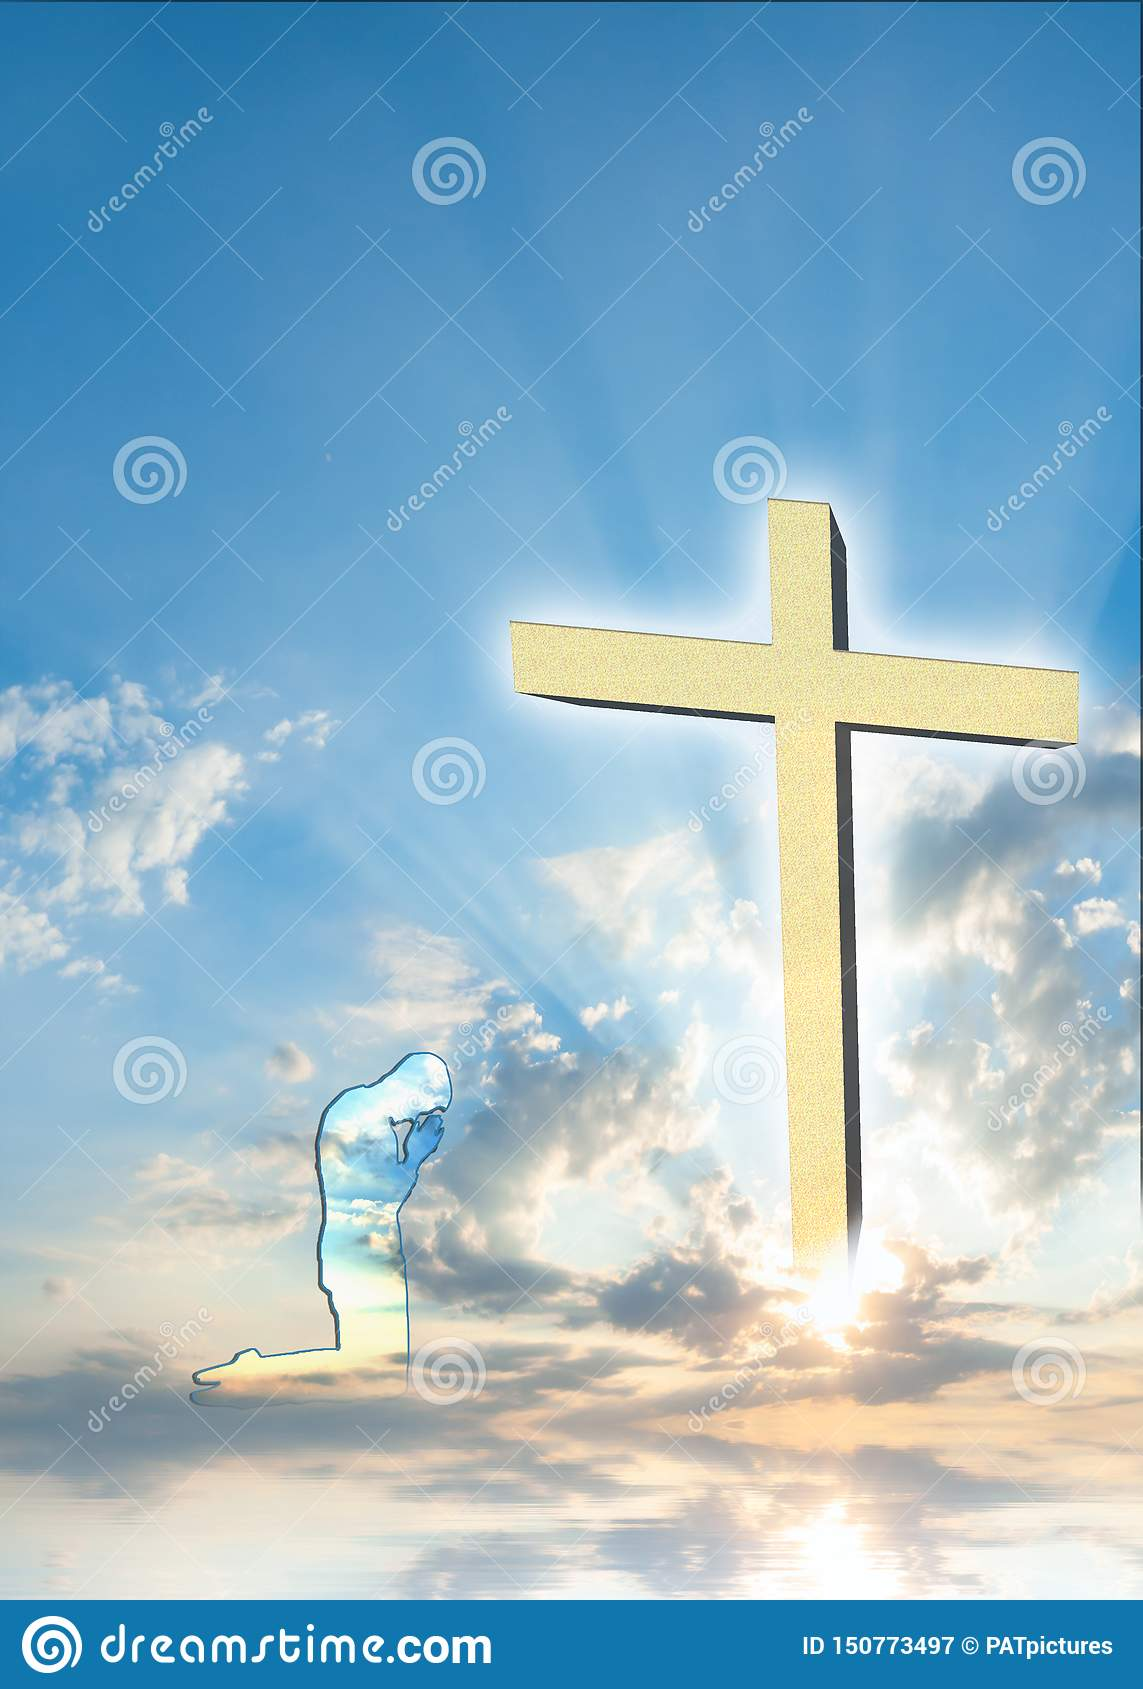 Christian Poster Background with praying man